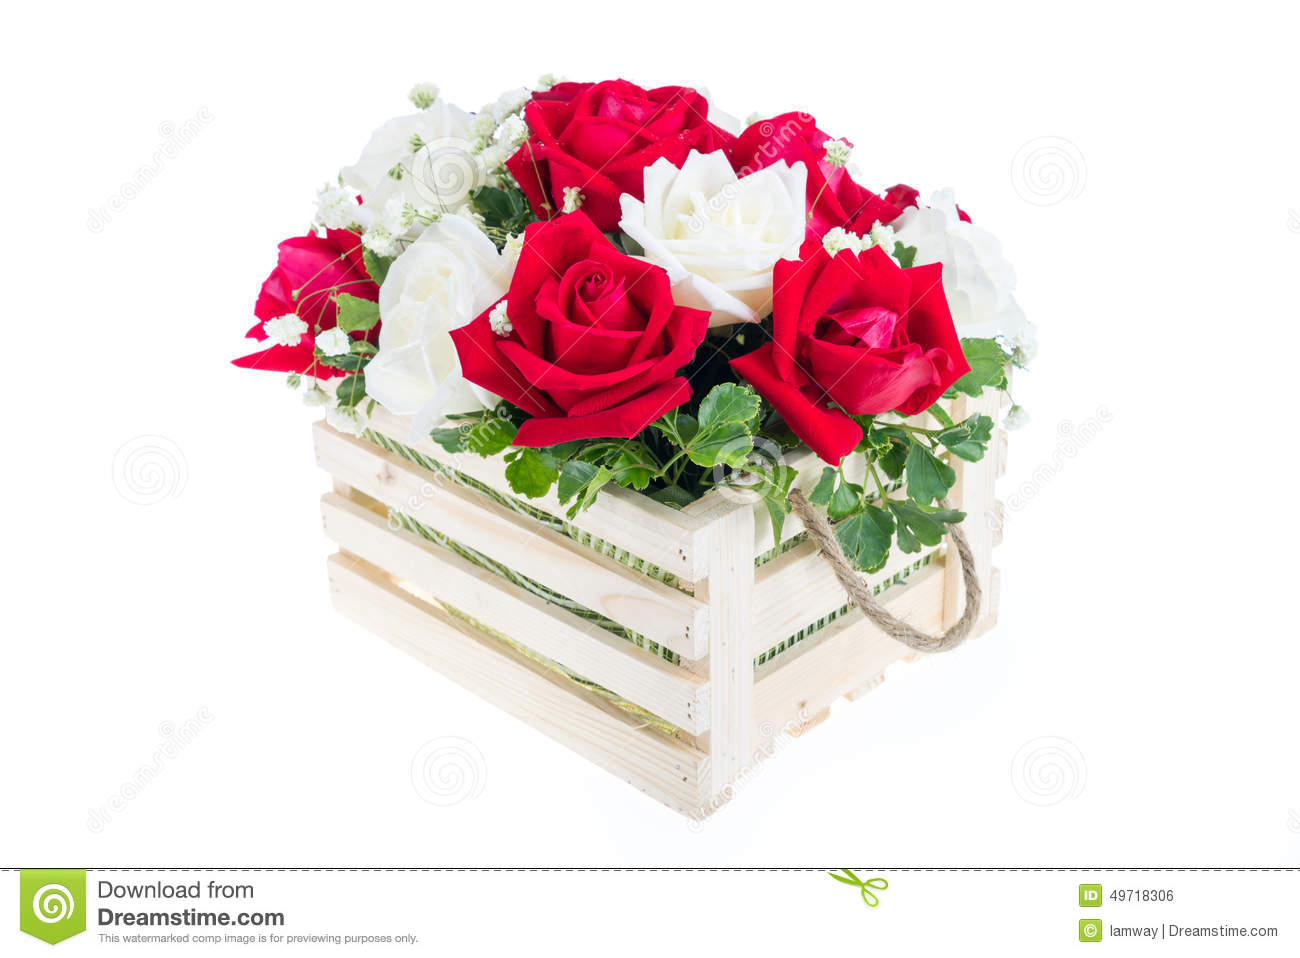 Red and white rose in a wooden basket with beautiful ribbon gif red and white rose in a wooden basket with beautiful ribbon gif izmirmasajfo